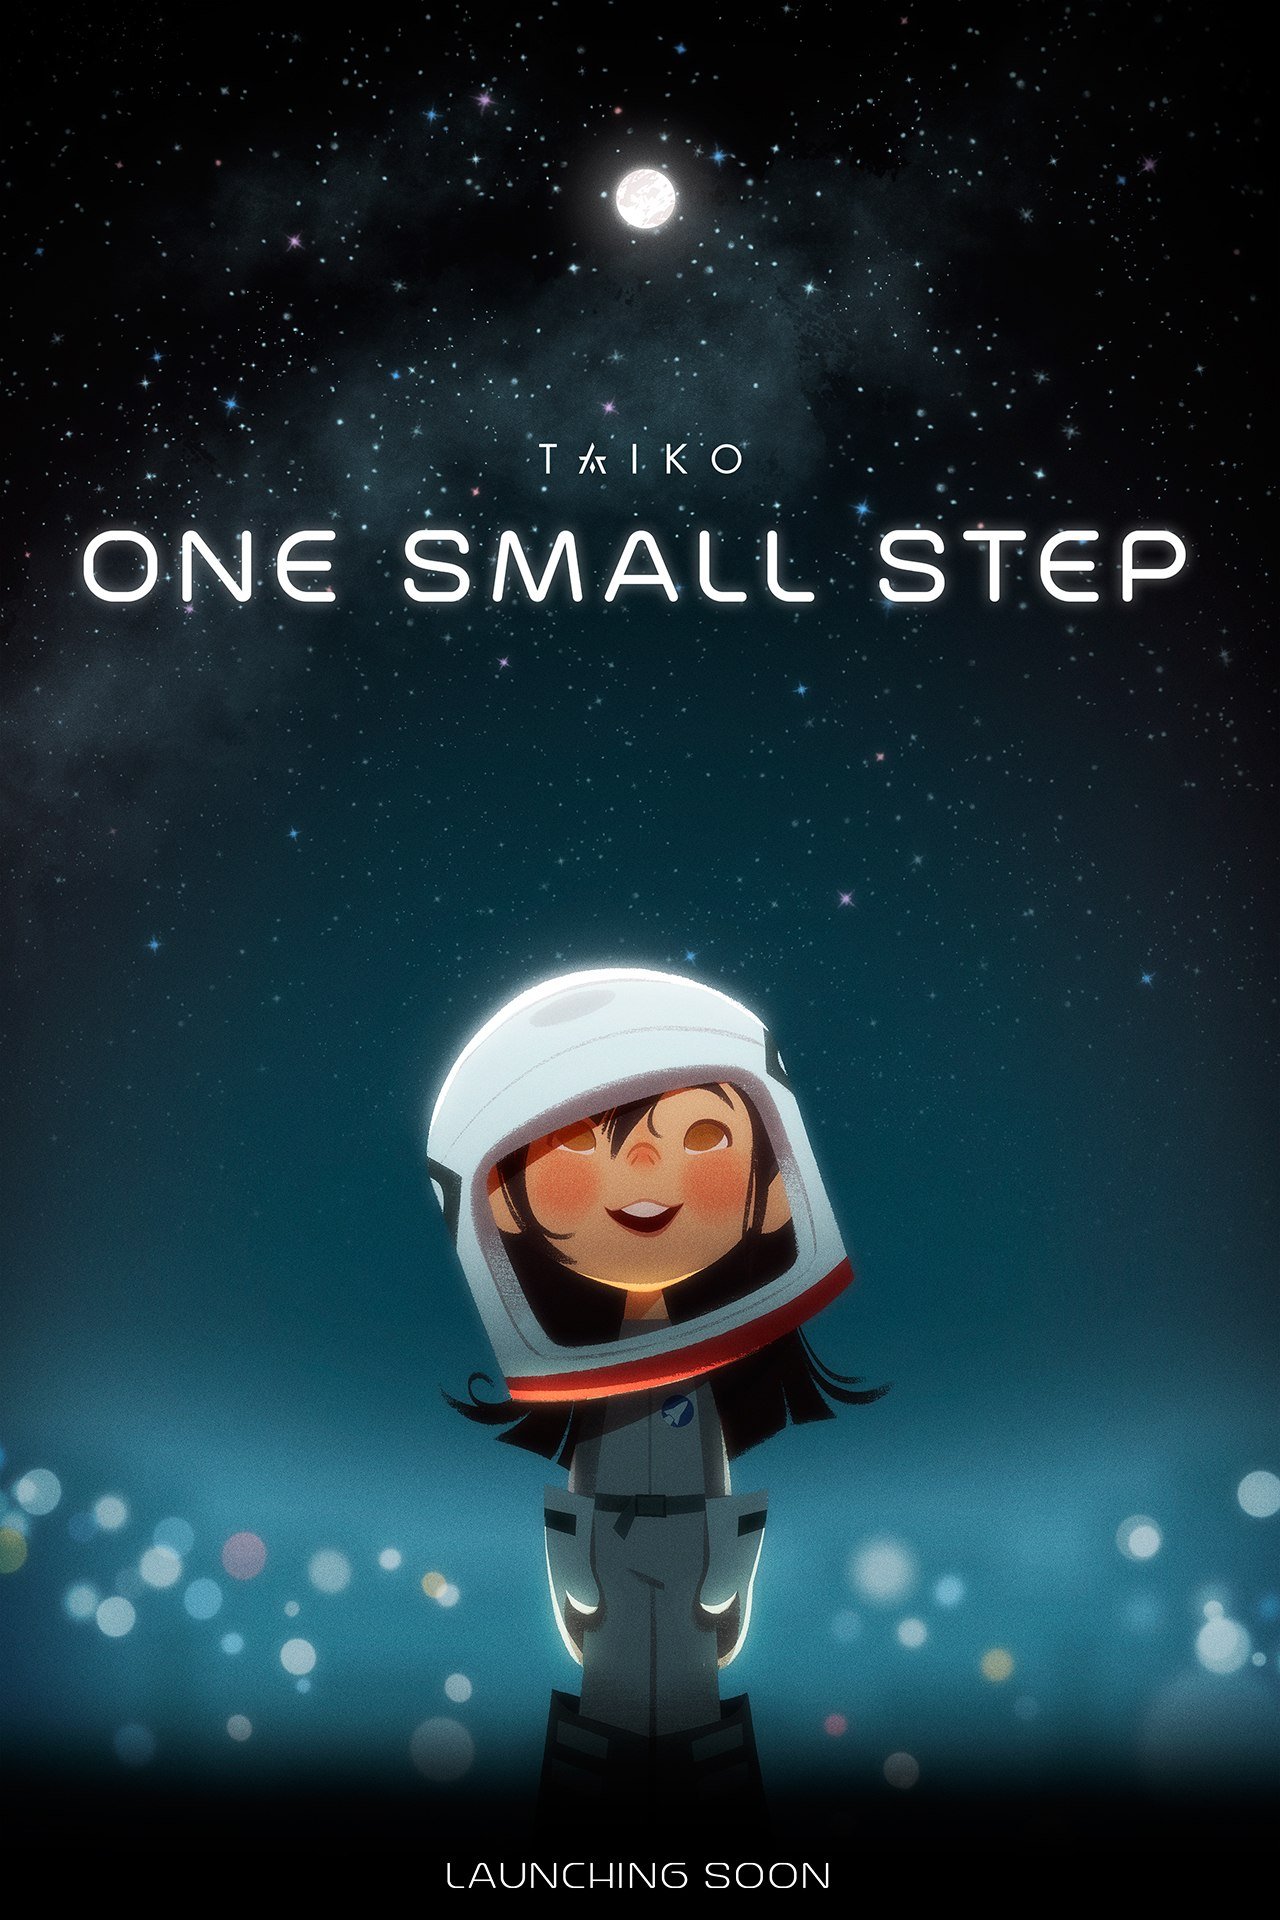 Taiko Studios Announces First Project One Small Step